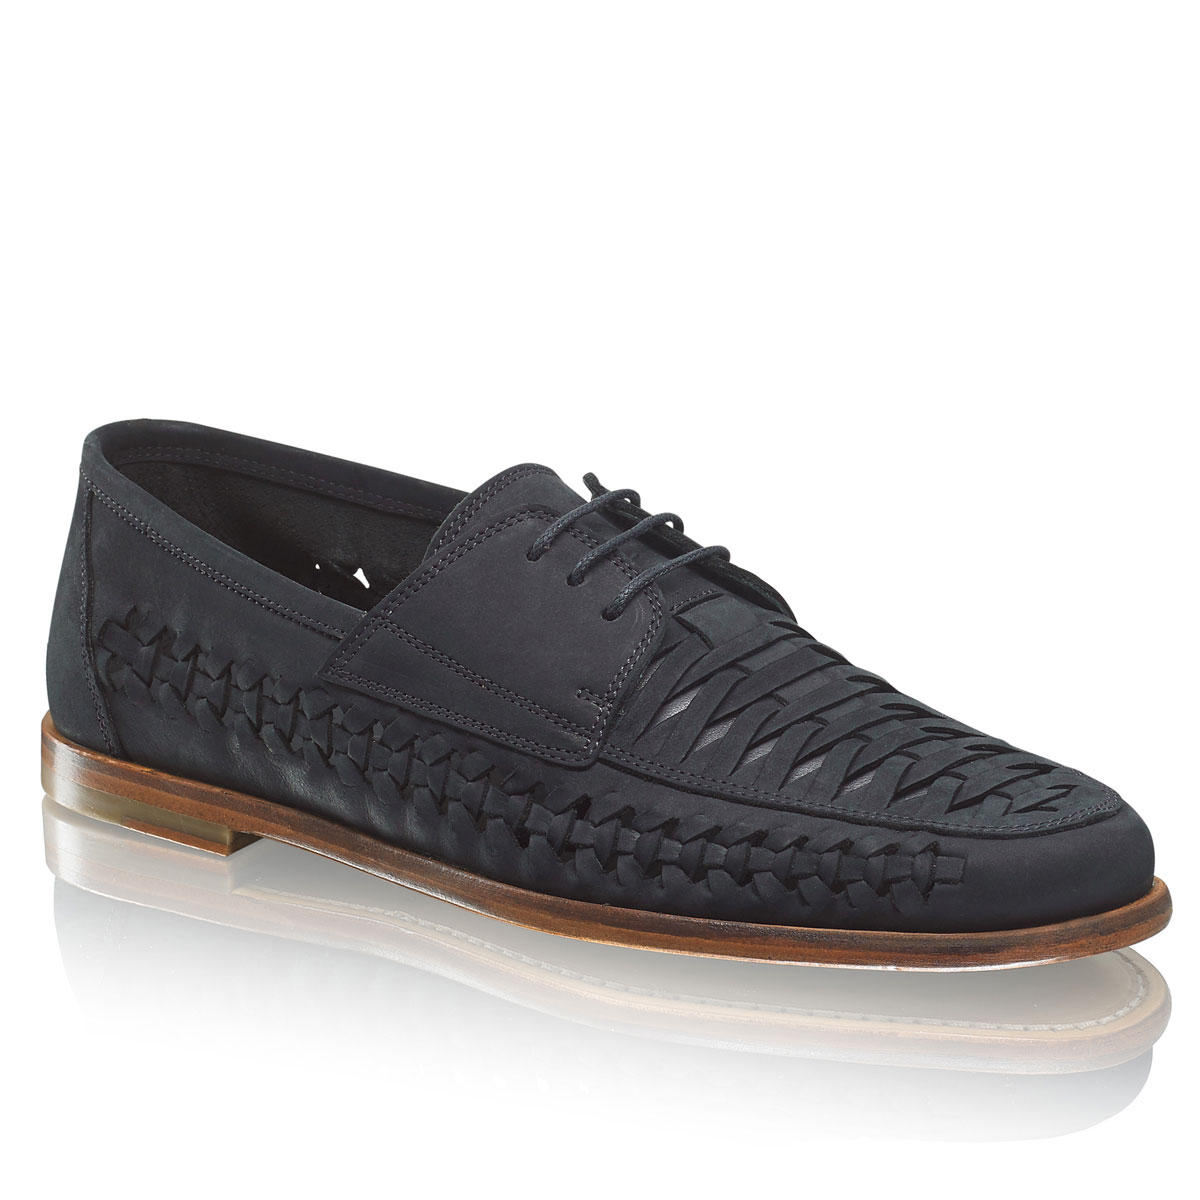 Russell And Bromley CUTLASS Woven Lace-Up